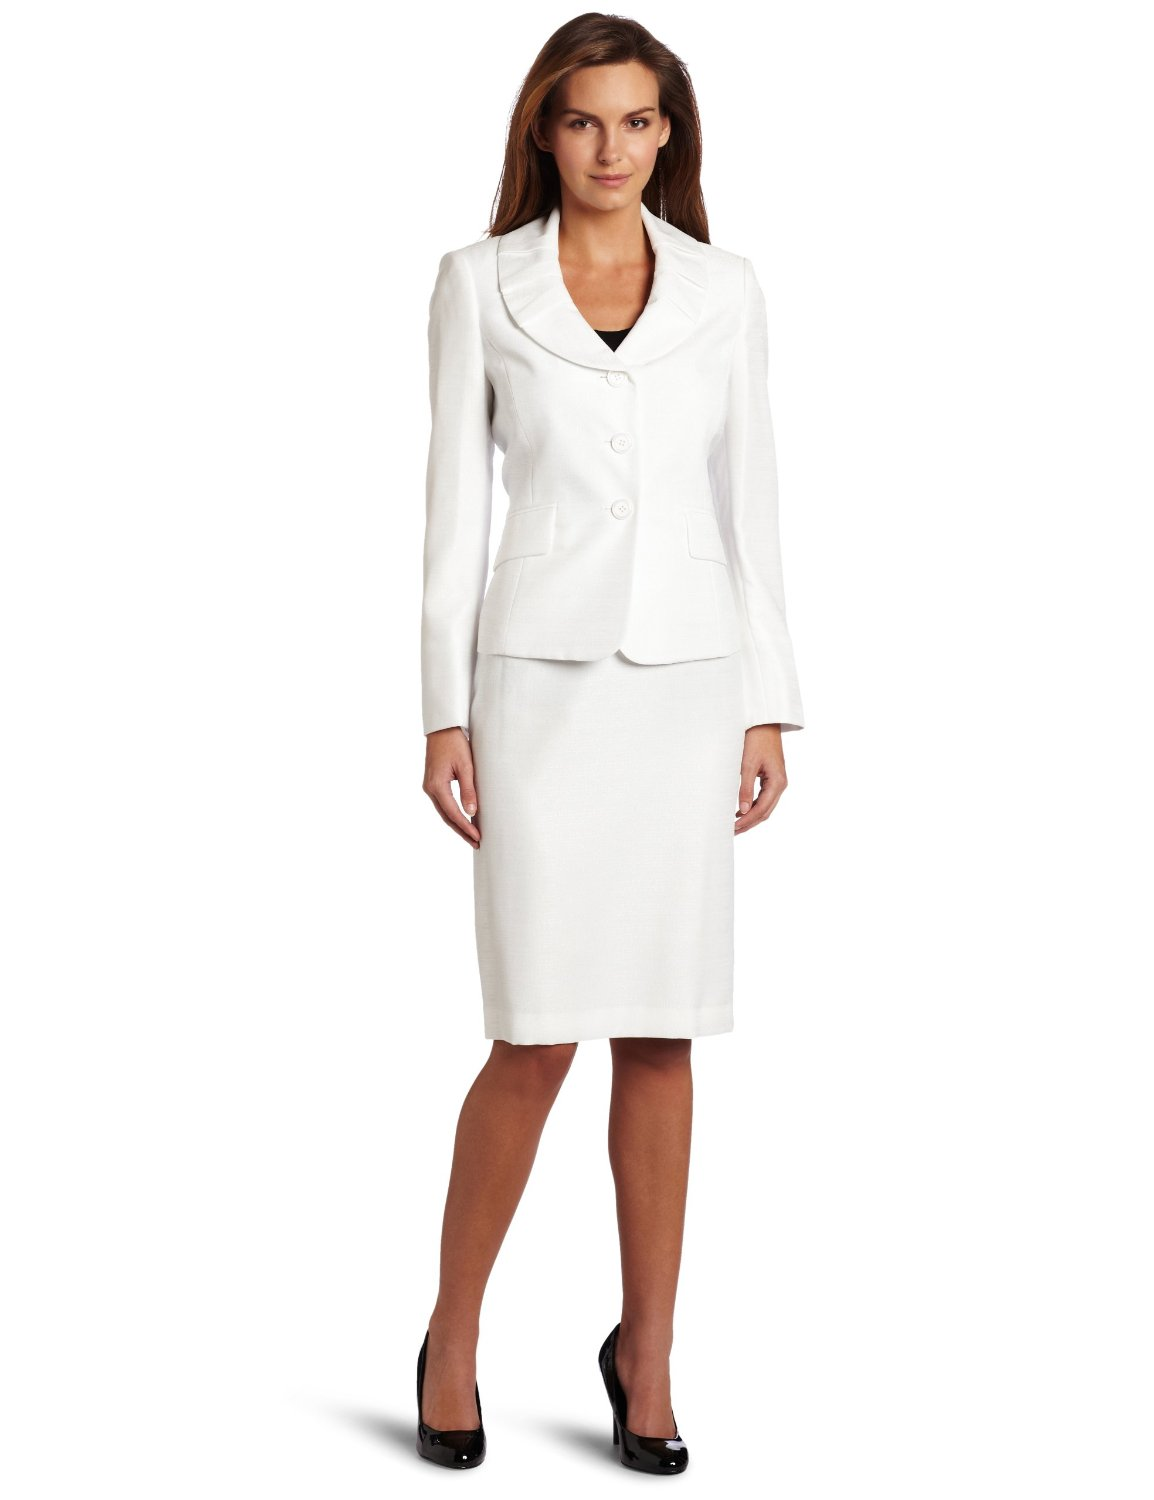 womens business casual clothing photo - 1